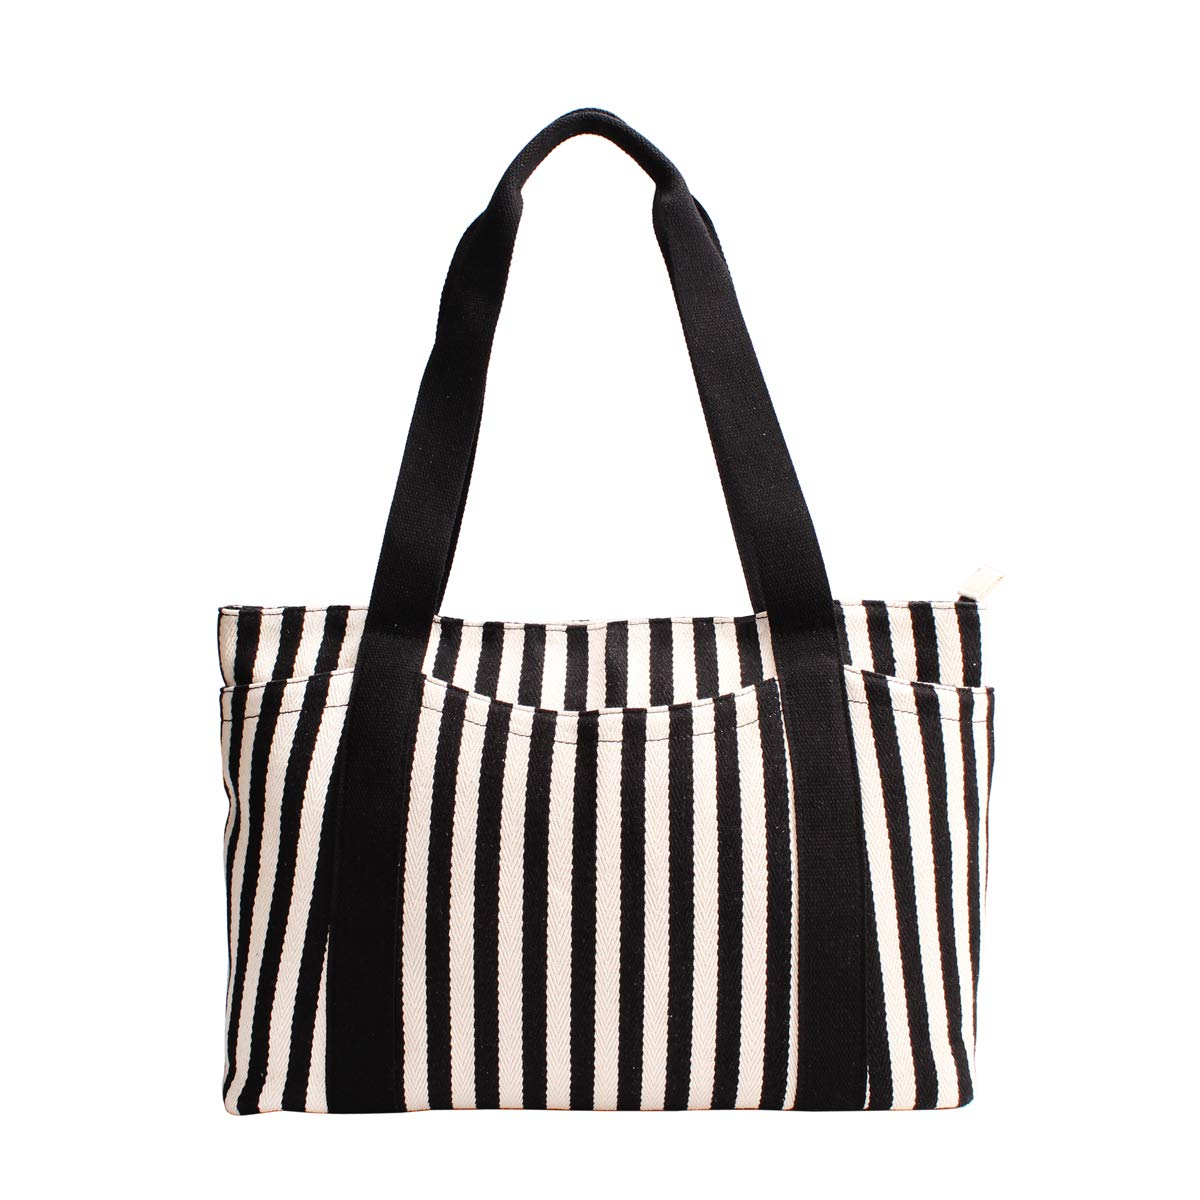 Canvas Tote Bag with Multiple Pocket/Zipper Closure Sholuder Bag/Travel Bag for Weekend/7 Pocket/Perfect Bag for Gift by sornean (Image #1)